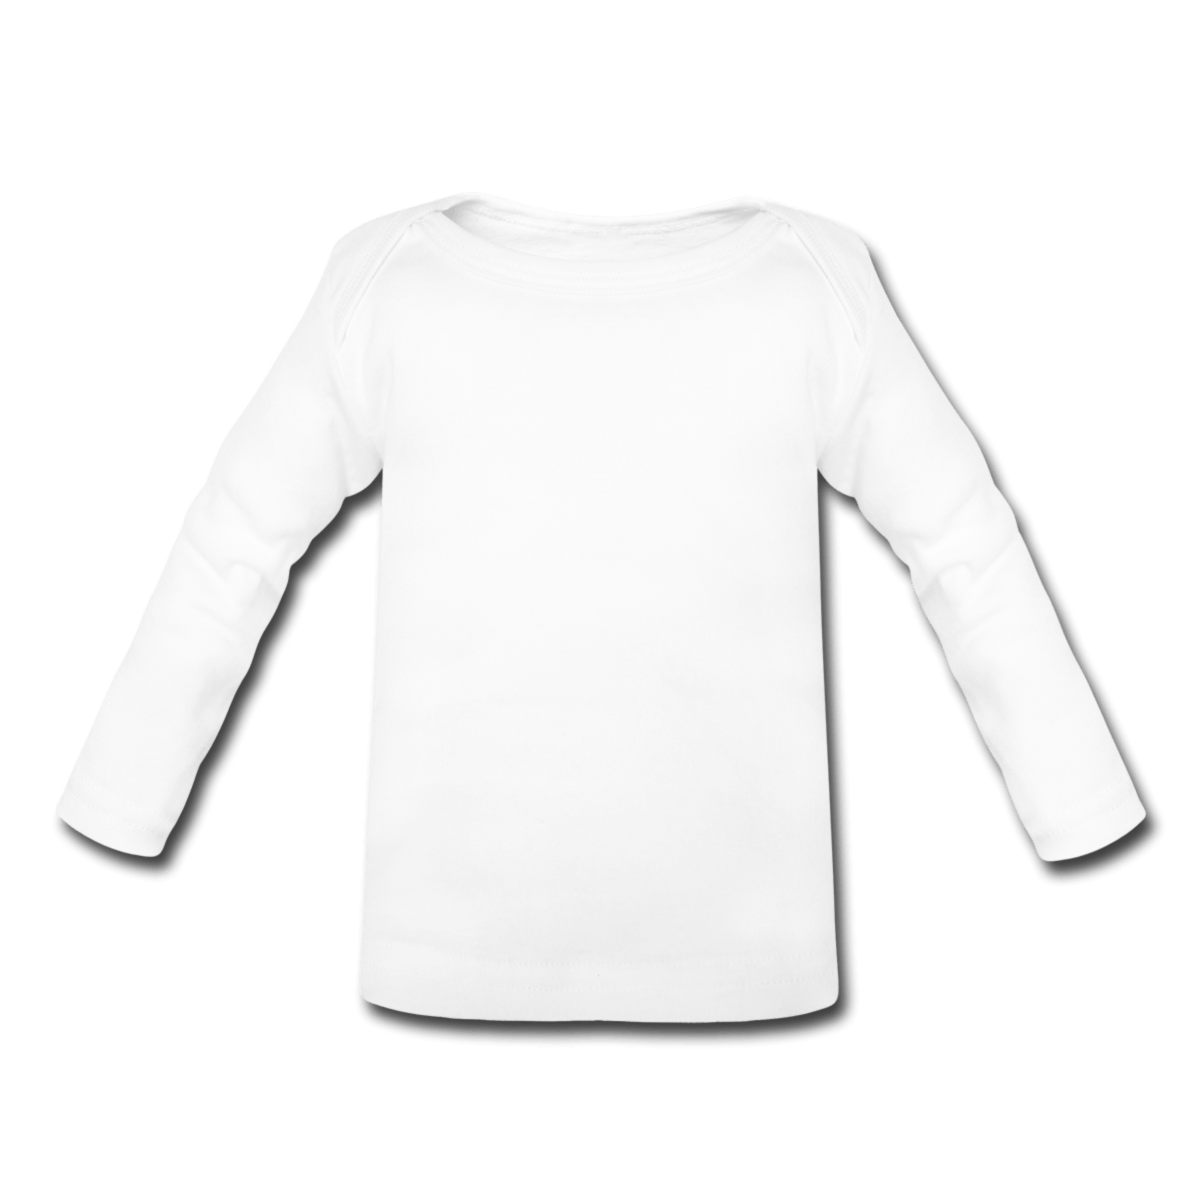 Long Sleeve Shirt Template Free Clip Art